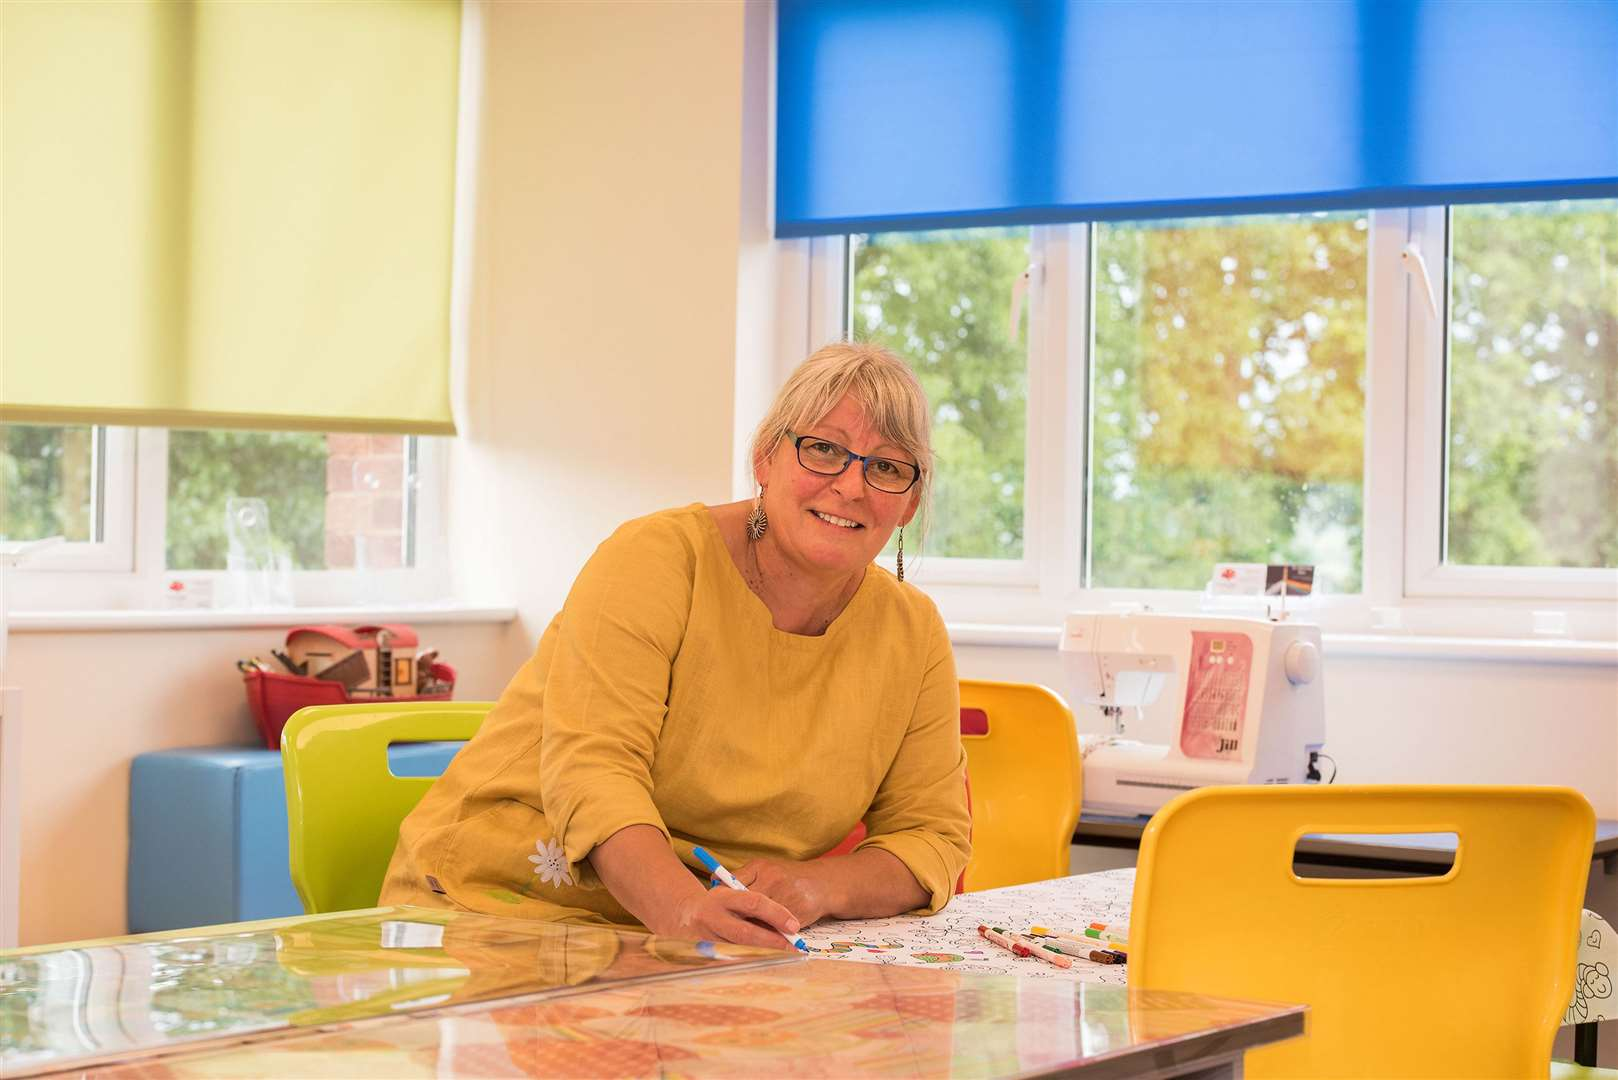 Snobby Eddy Crafts owner Debby Dyson inside her new, brighter and more spacious premises. Picture by Mark Westley.